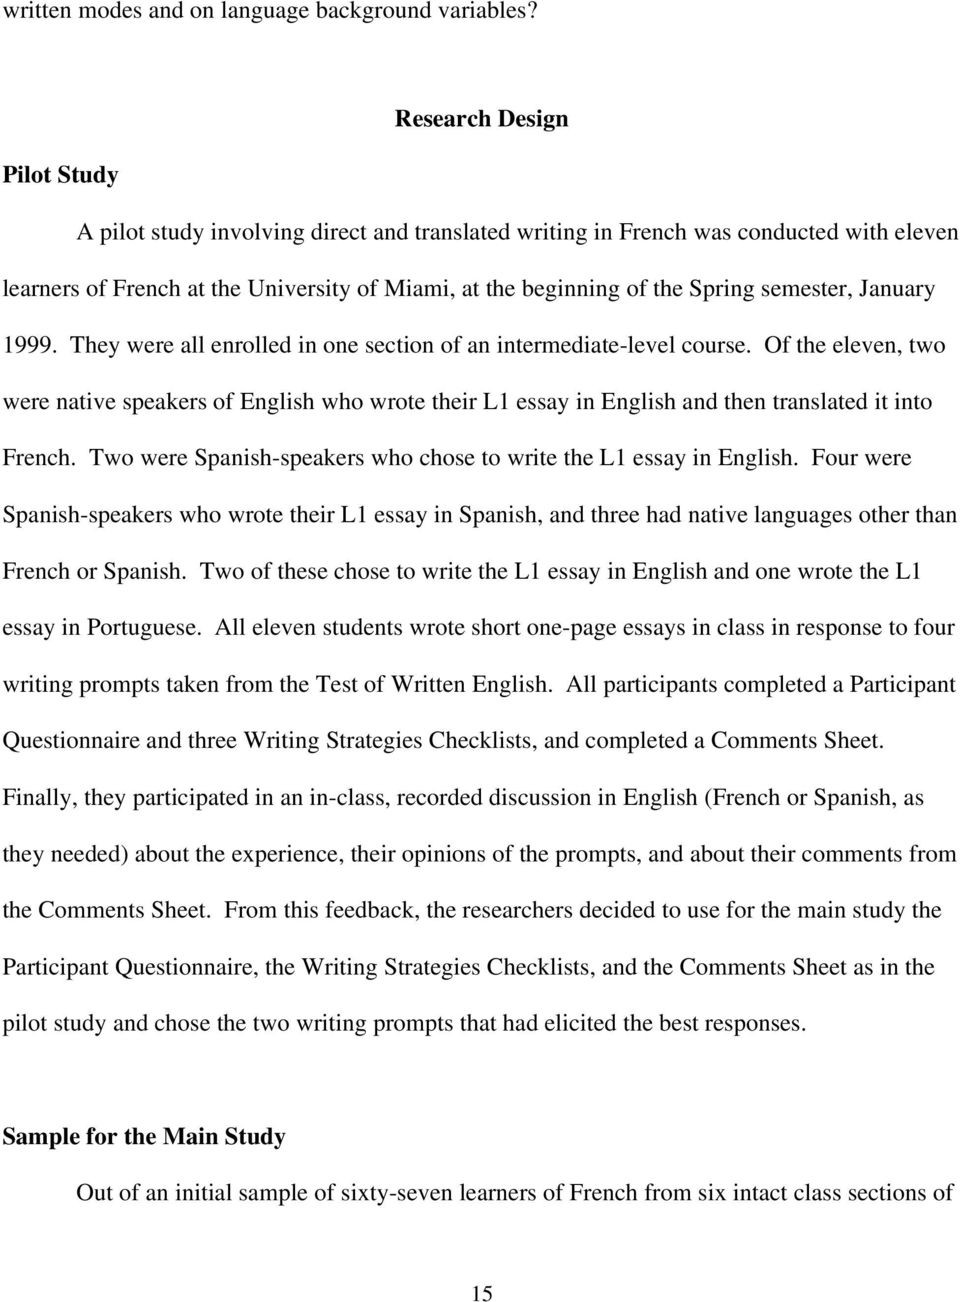 002 Essay Example In Spanish Direct Vs Translated Writing What Students Do And The Google Translate Pa Write Your My Teaching Essays Phrases How To An About Yourself Unbelievable On India Language Vacation 960